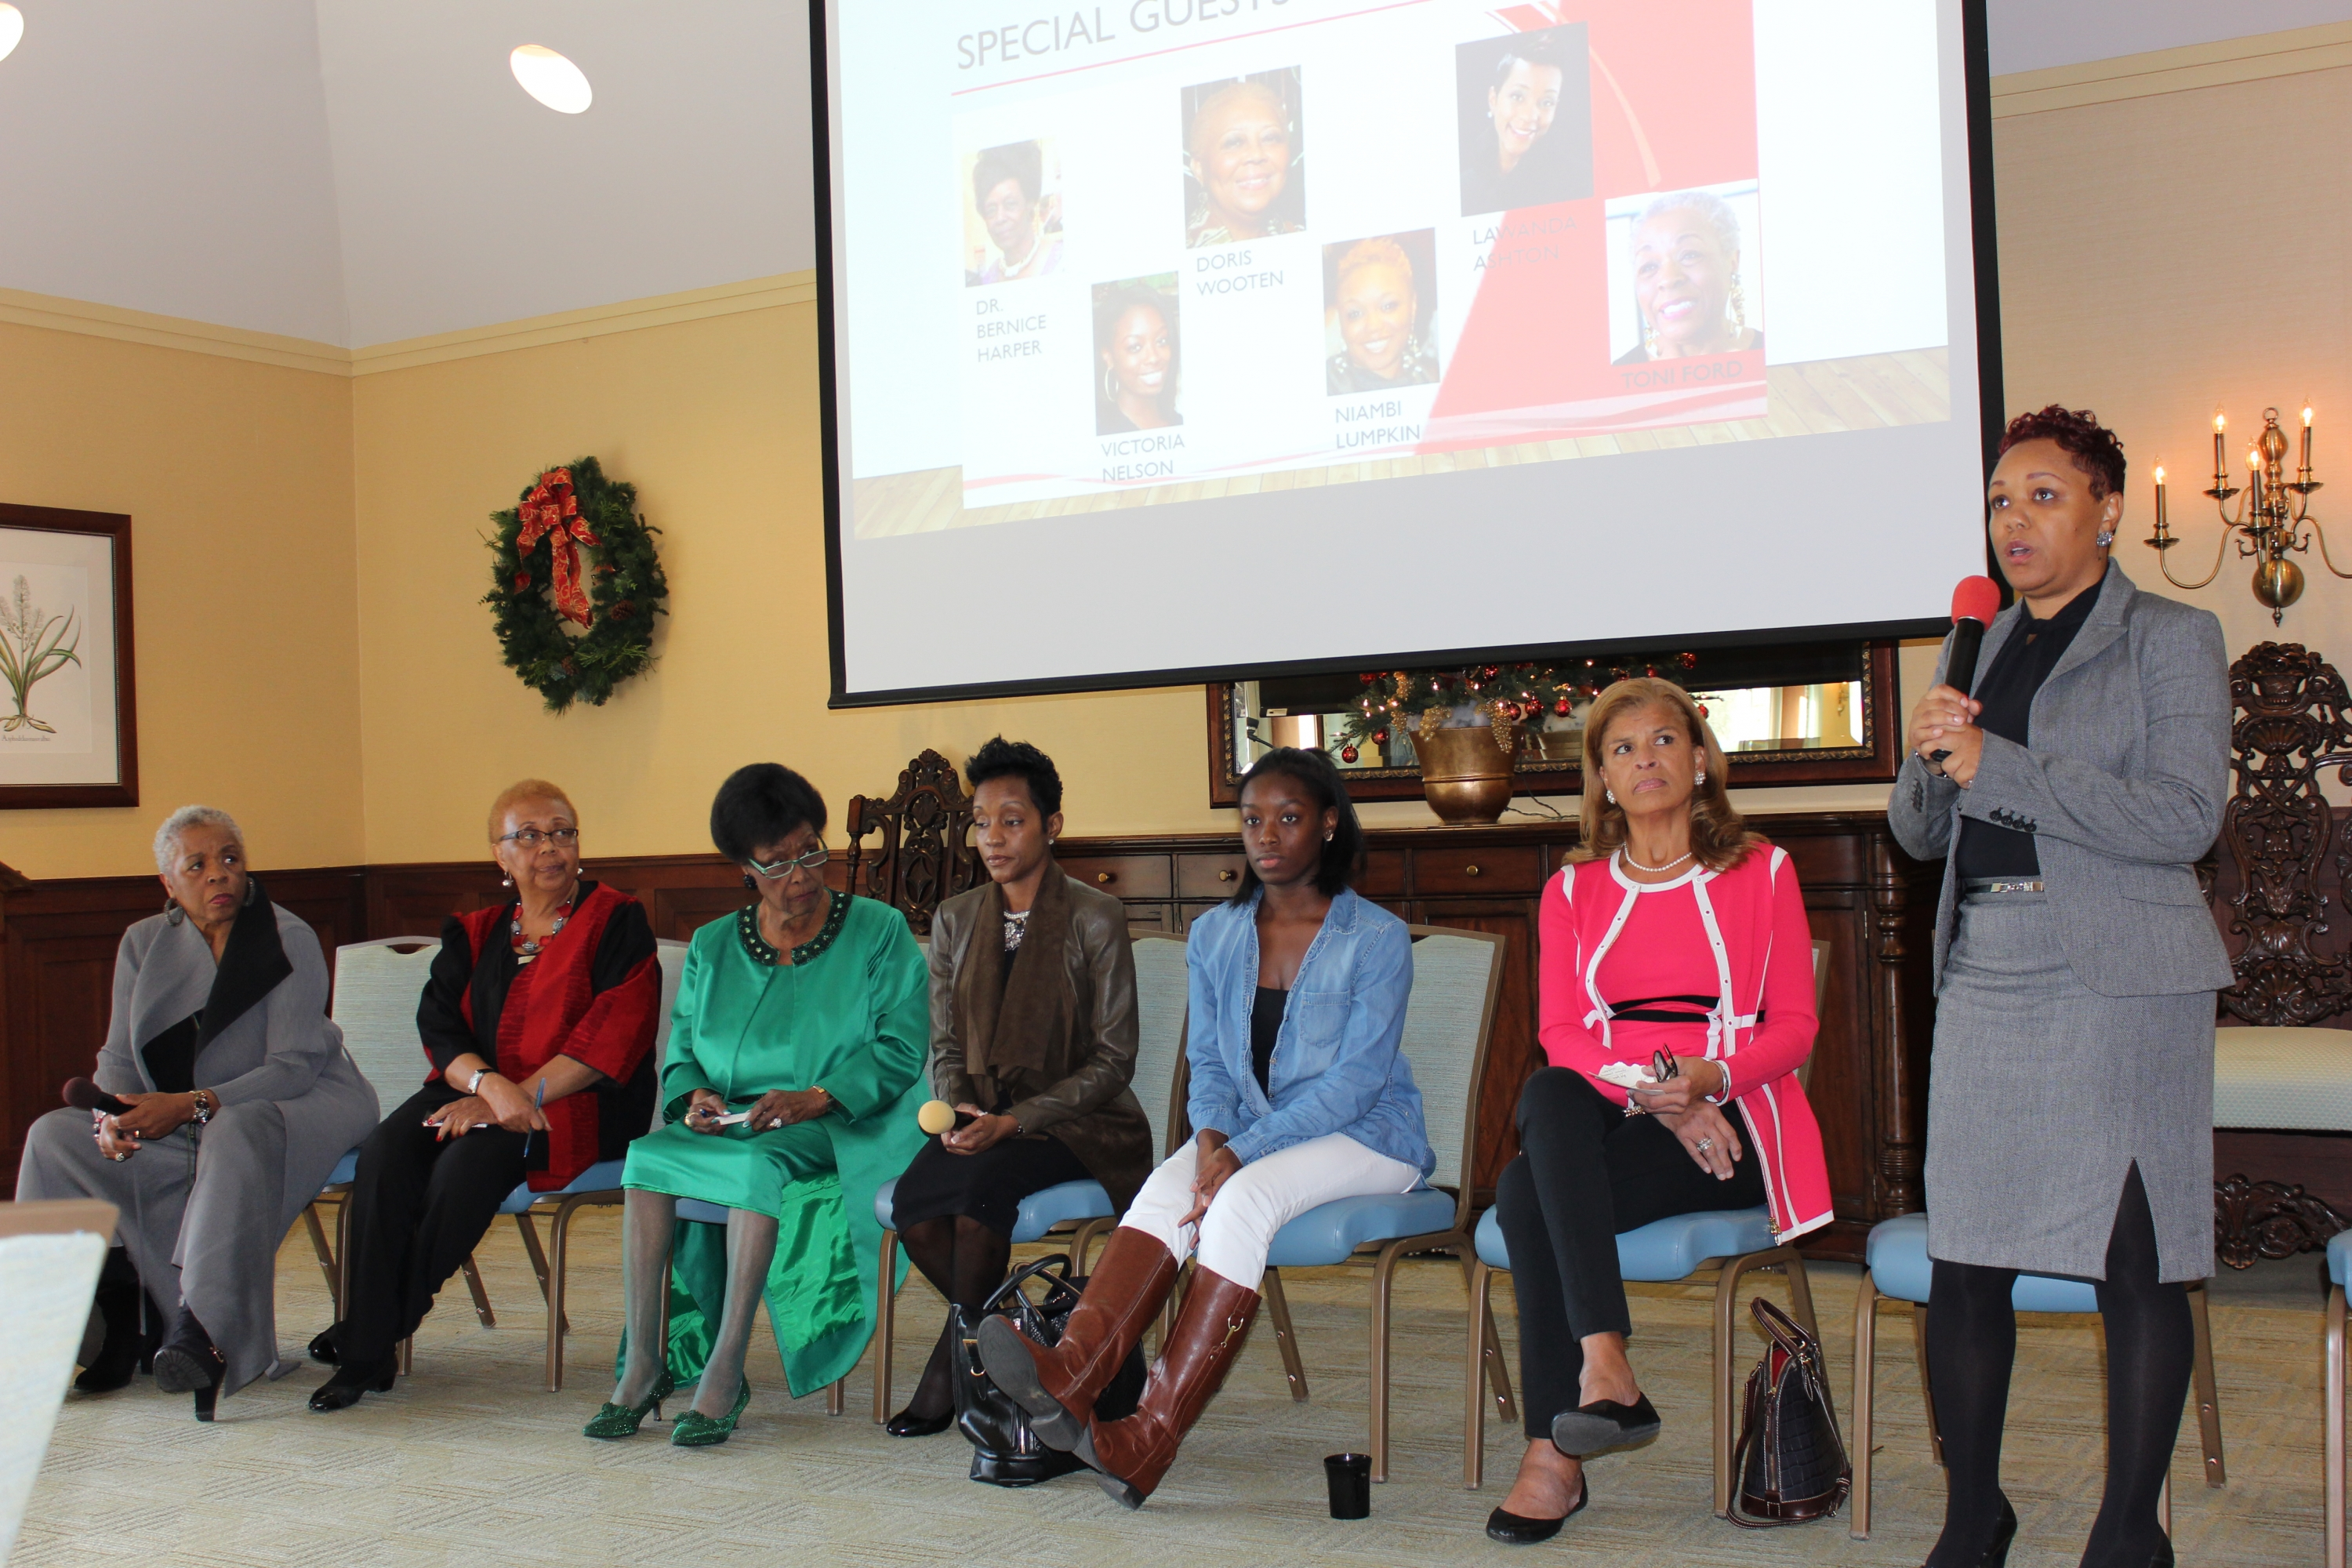 Panelists share their thoughts and expertise during the BSU event at SugarLoaf.